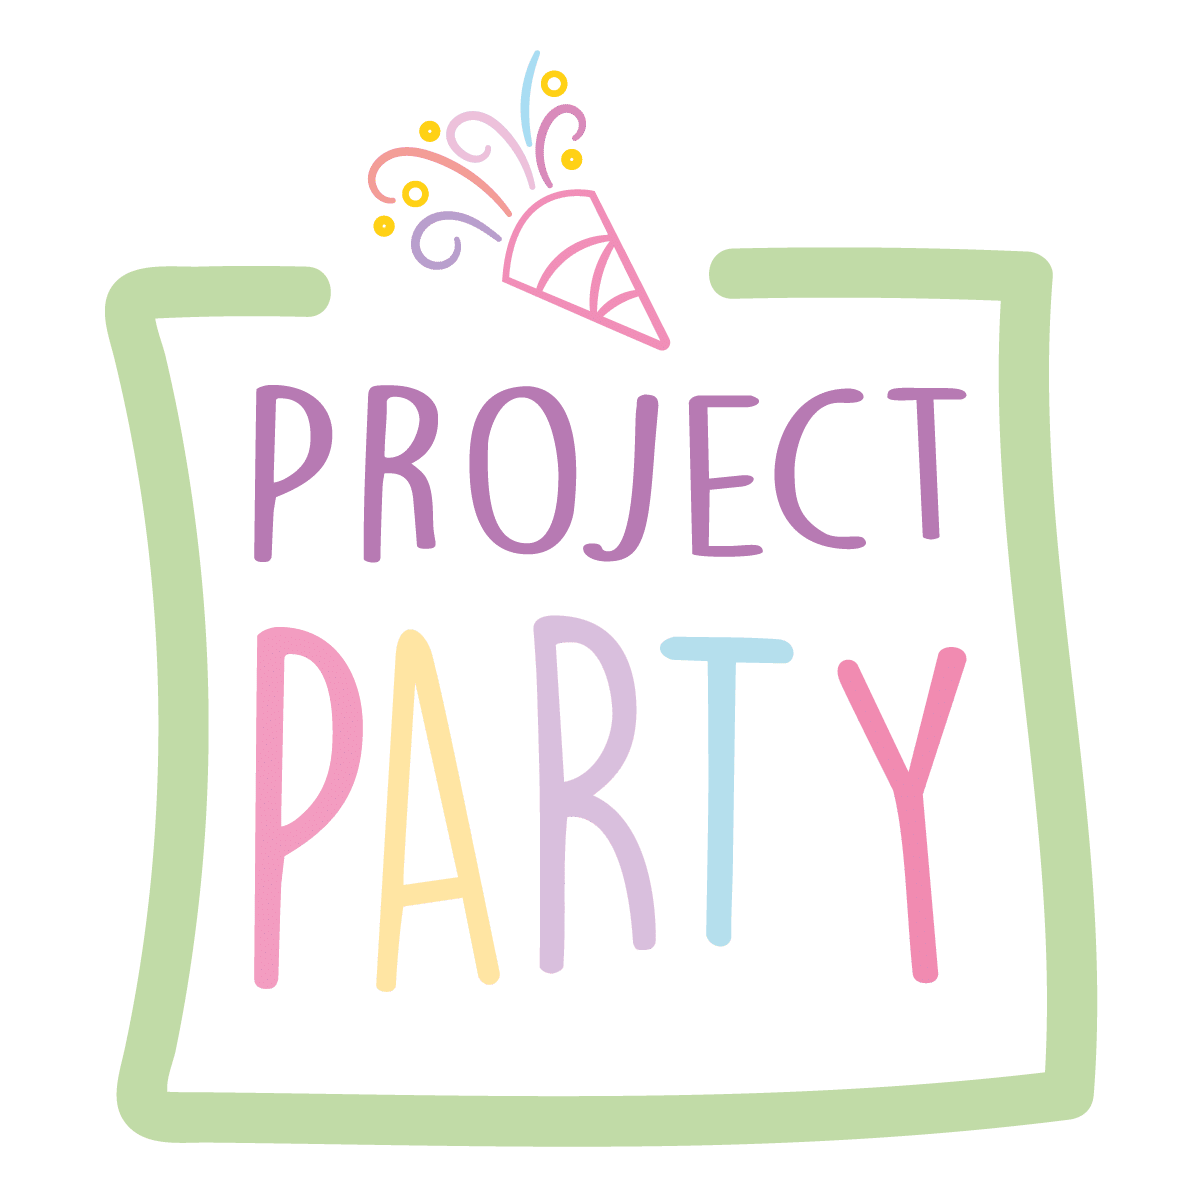 Project Party